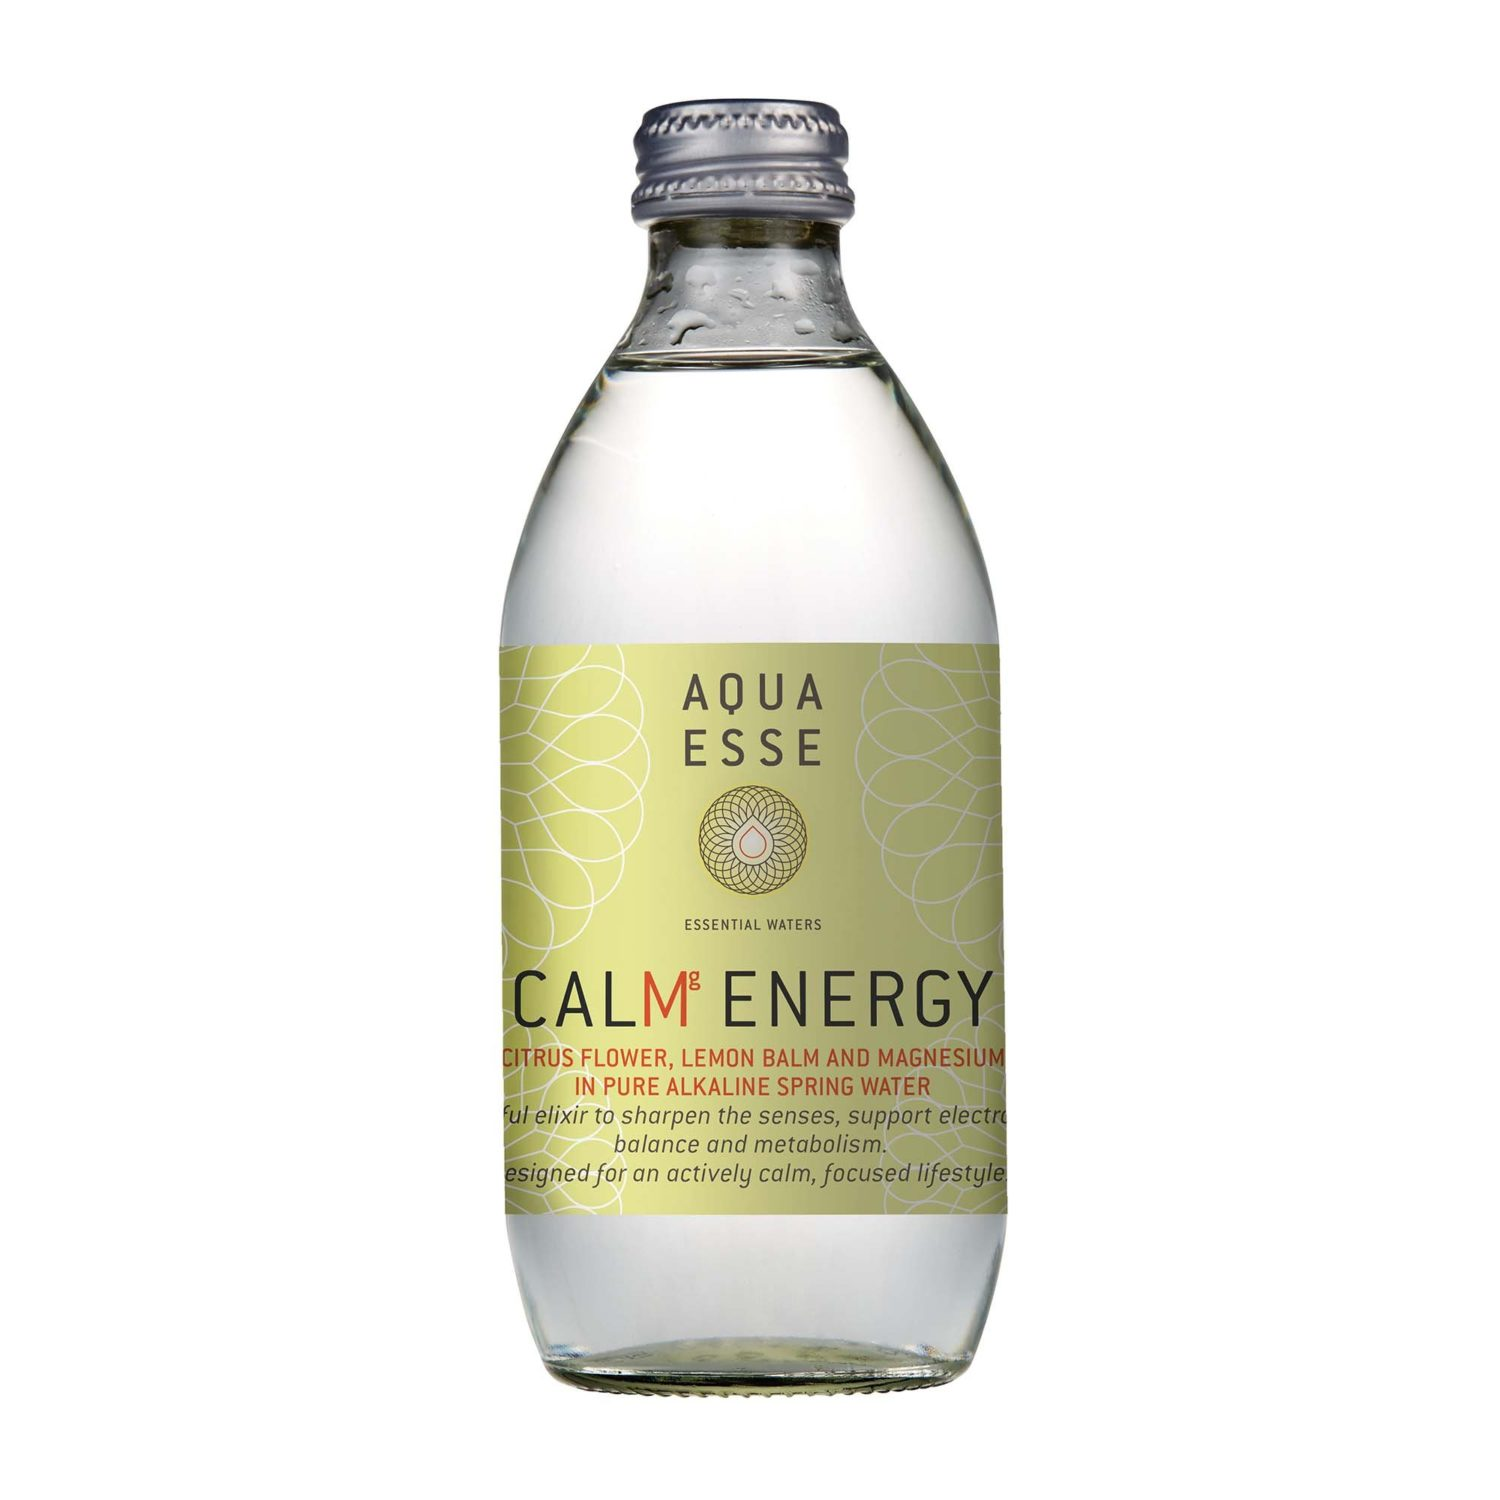 AQUA ESSE Calm + Energy Watershop